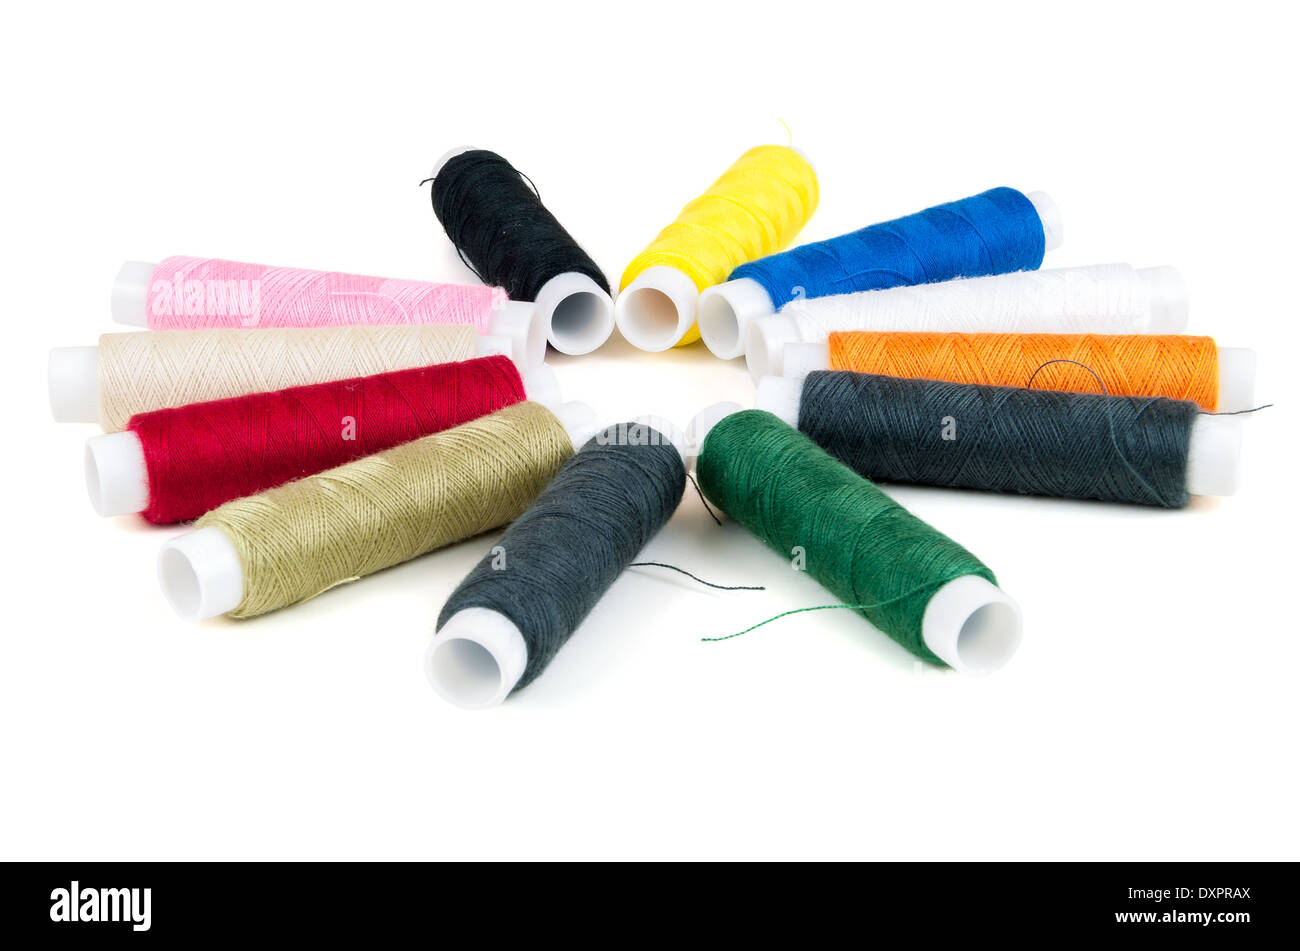 Colored spools of threads isolated on white background - Stock Image